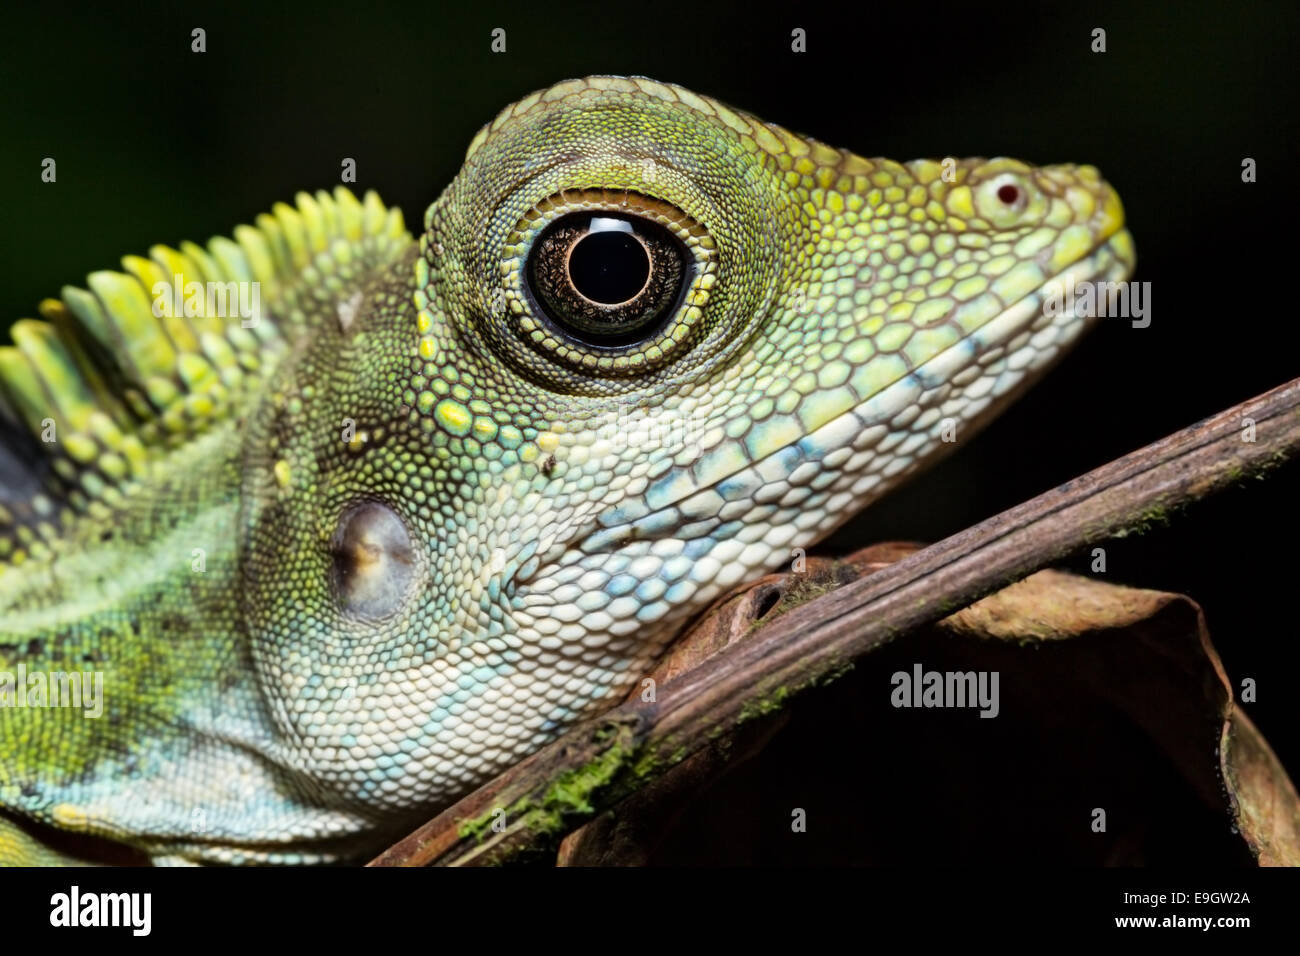 Adult male Great Anglehead Lizard (Gonocephalus grandis) resting during the night on a tree in a Malaysian tropical - Stock Image